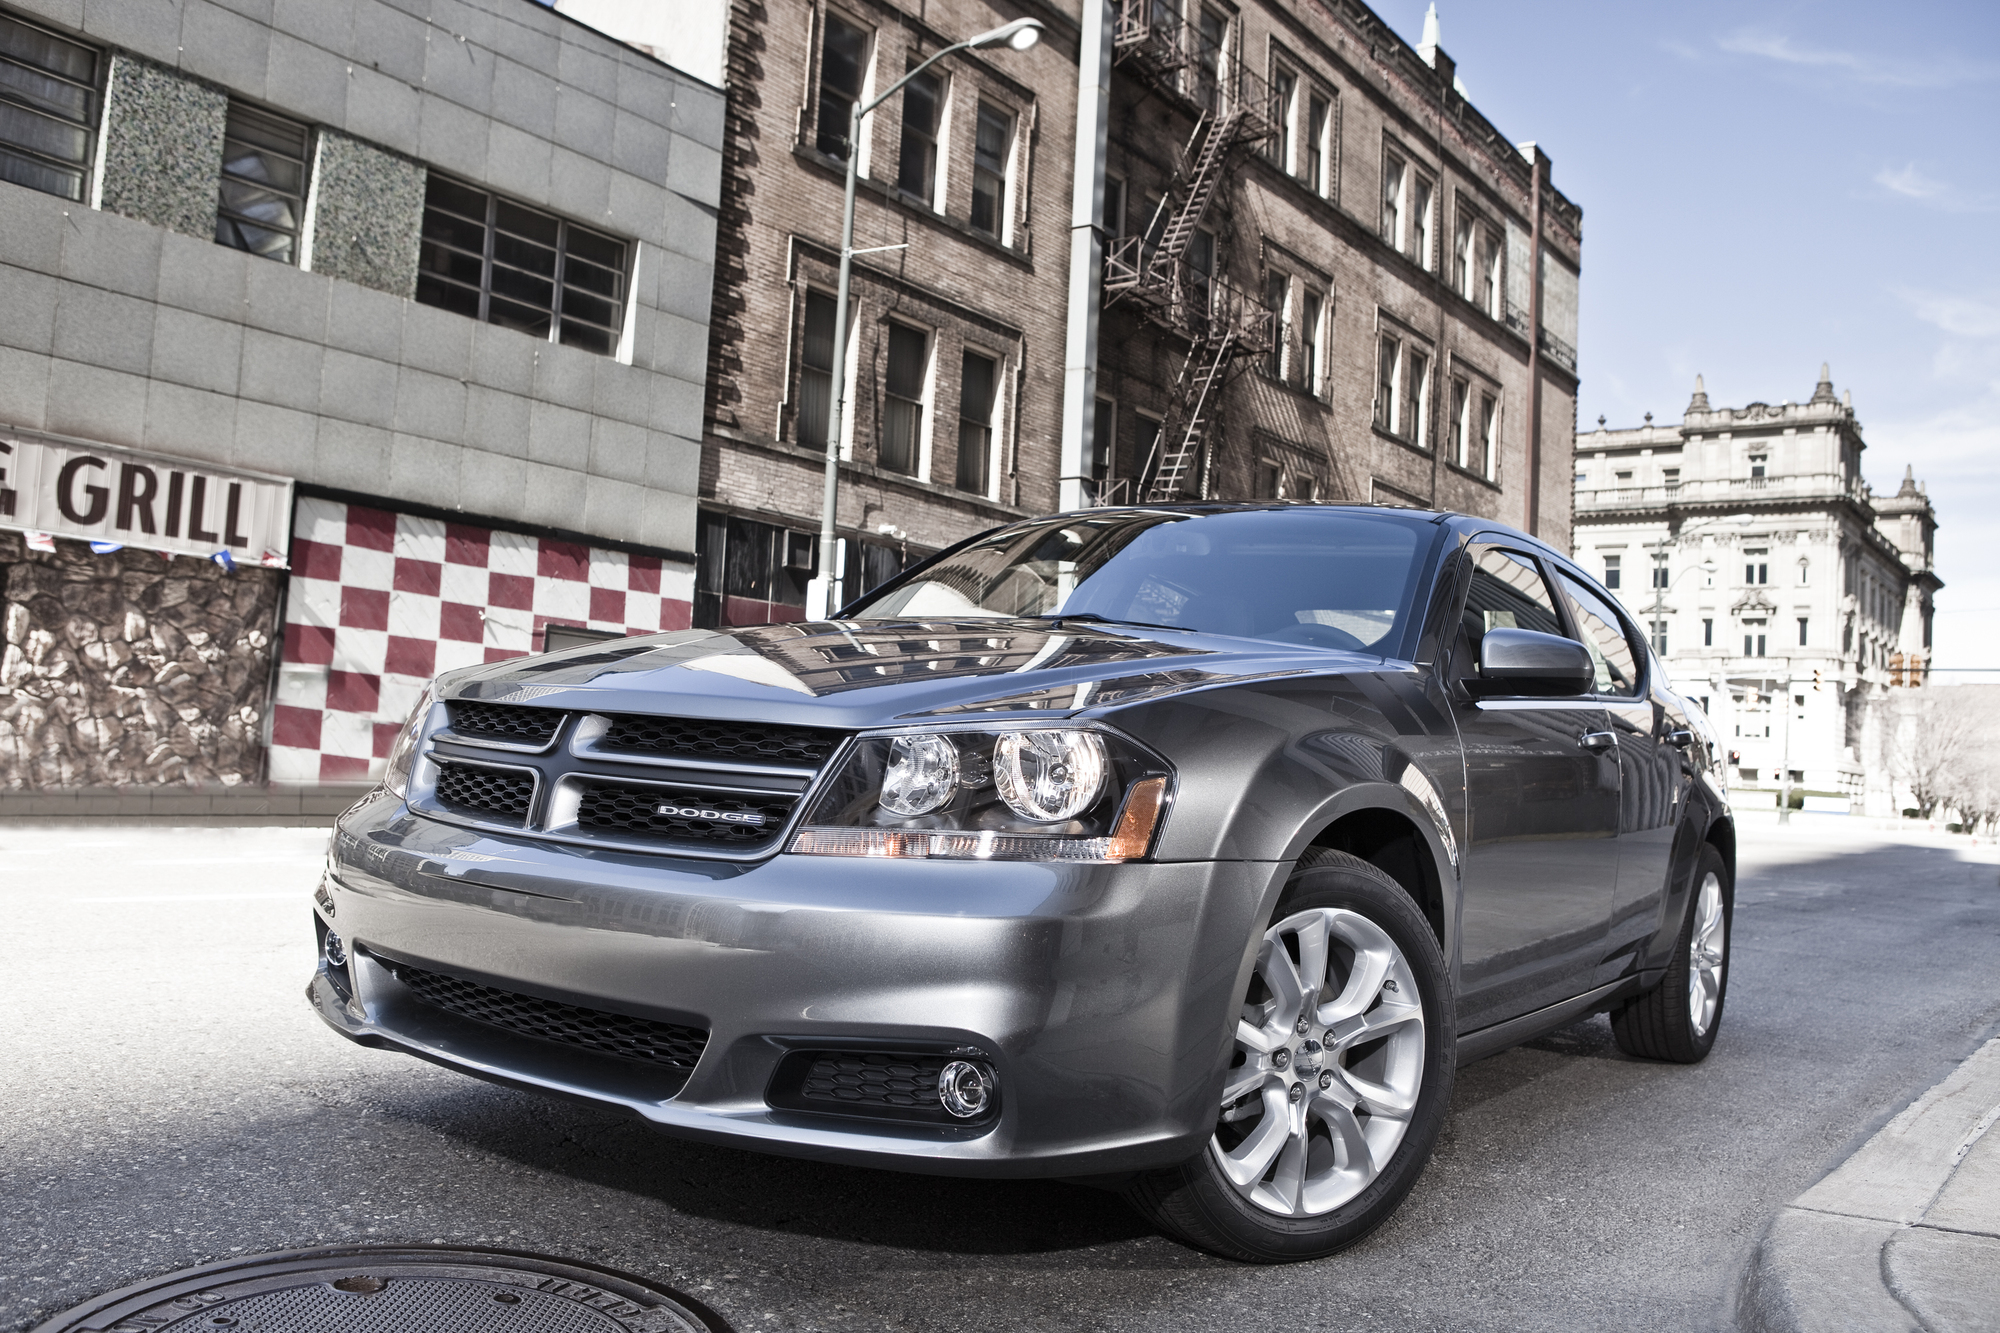 Land Rover Indianapolis >> 2012 Dodge Avenger Review, Ratings, Specs, Prices, and ...